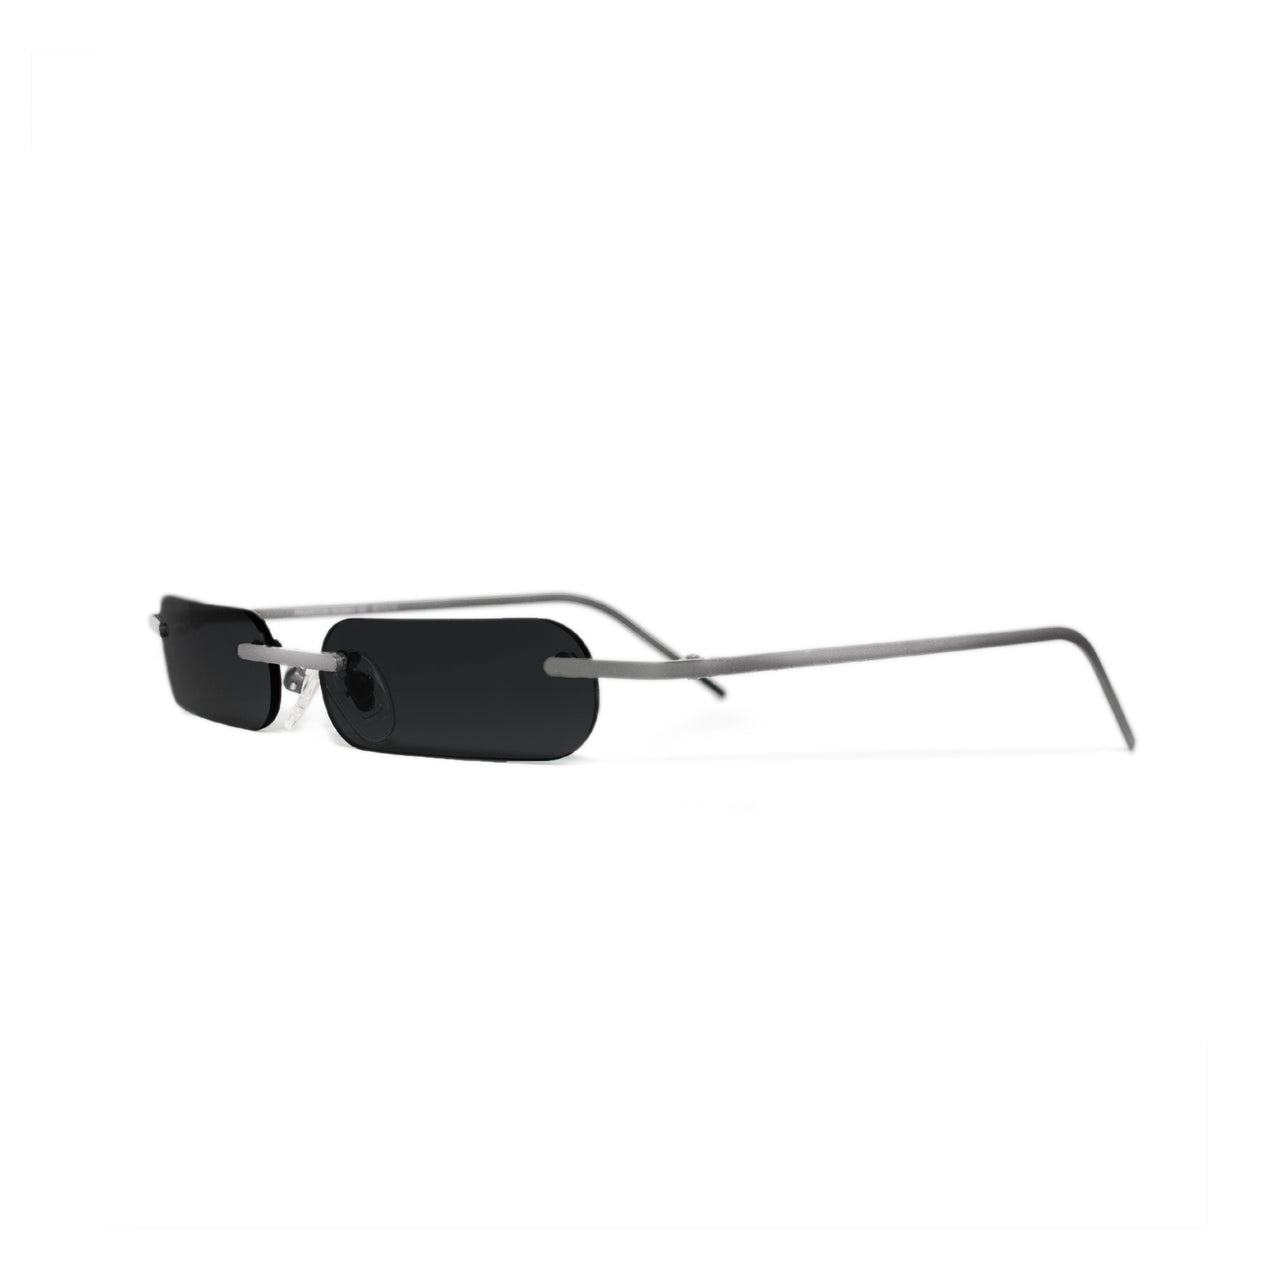 Metal. Polished Silver. Black Lens. - BLYSZAK eyewear eyewear - eyewear, optical, sunglasses